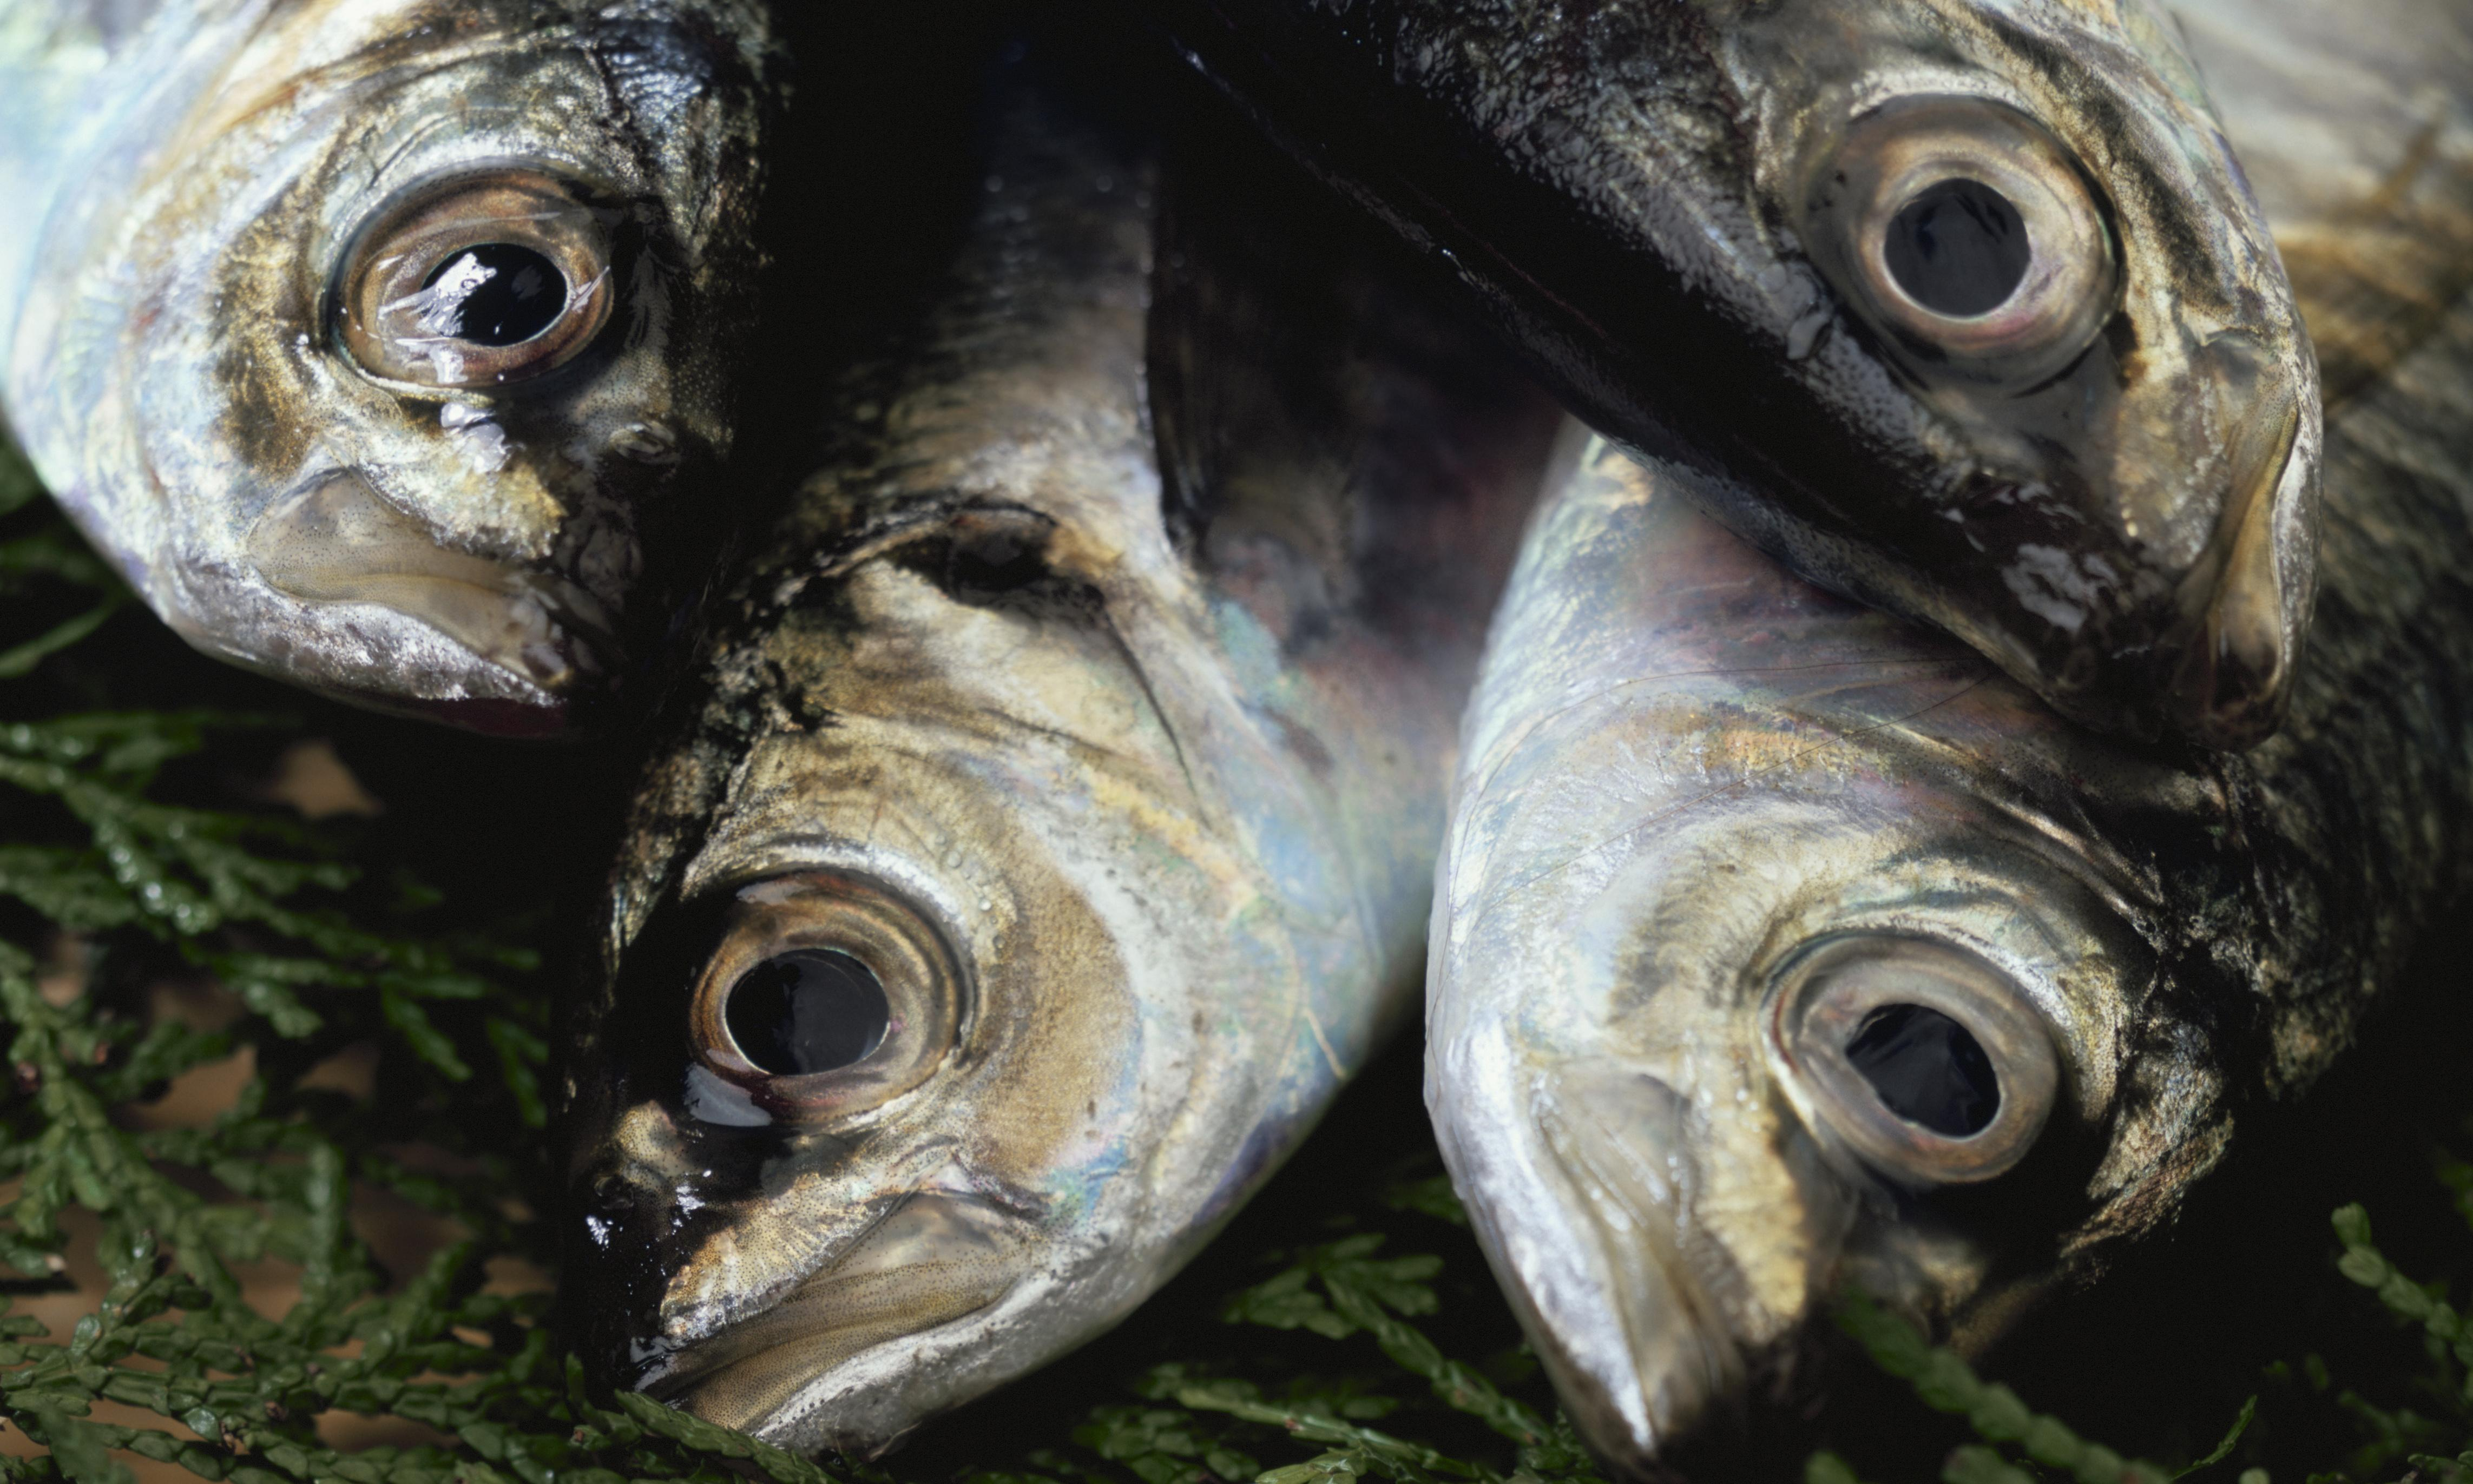 Bribery allegations over fishing rights rock Iceland and Namibia